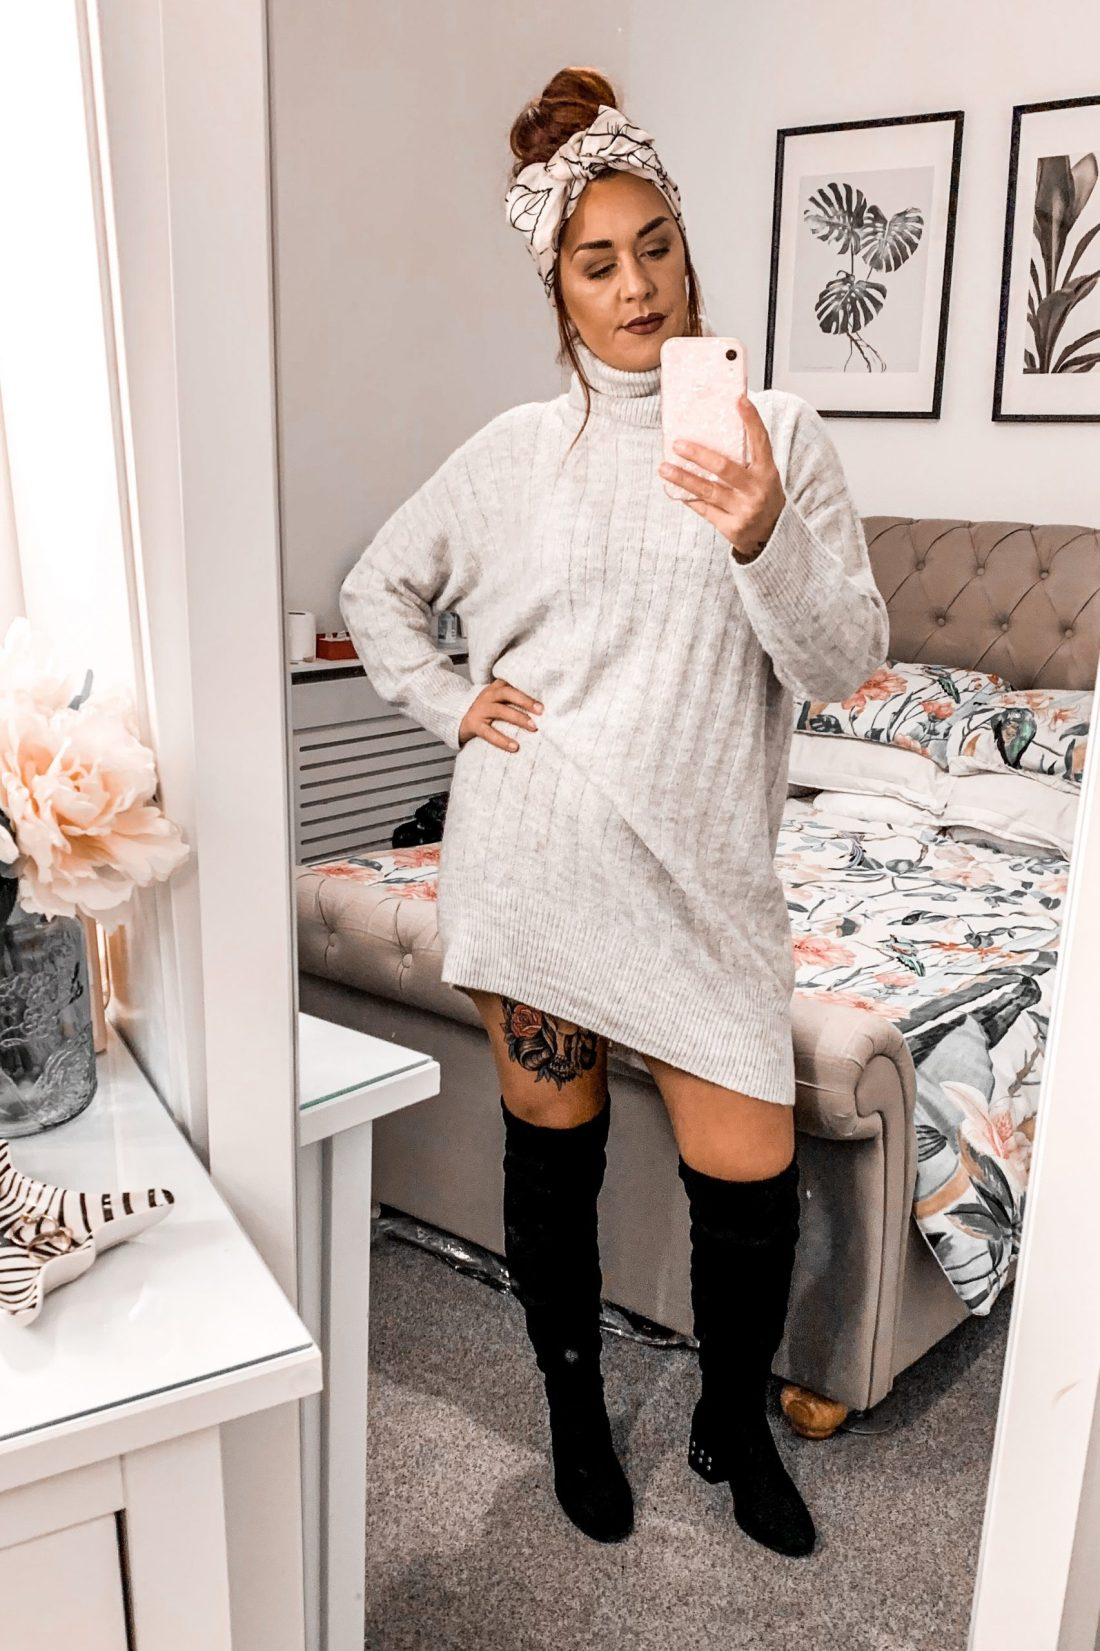 This Mama style blog is helping mums to find their way in fashion & beauty again. Us busy mums can still be stylish on a budget